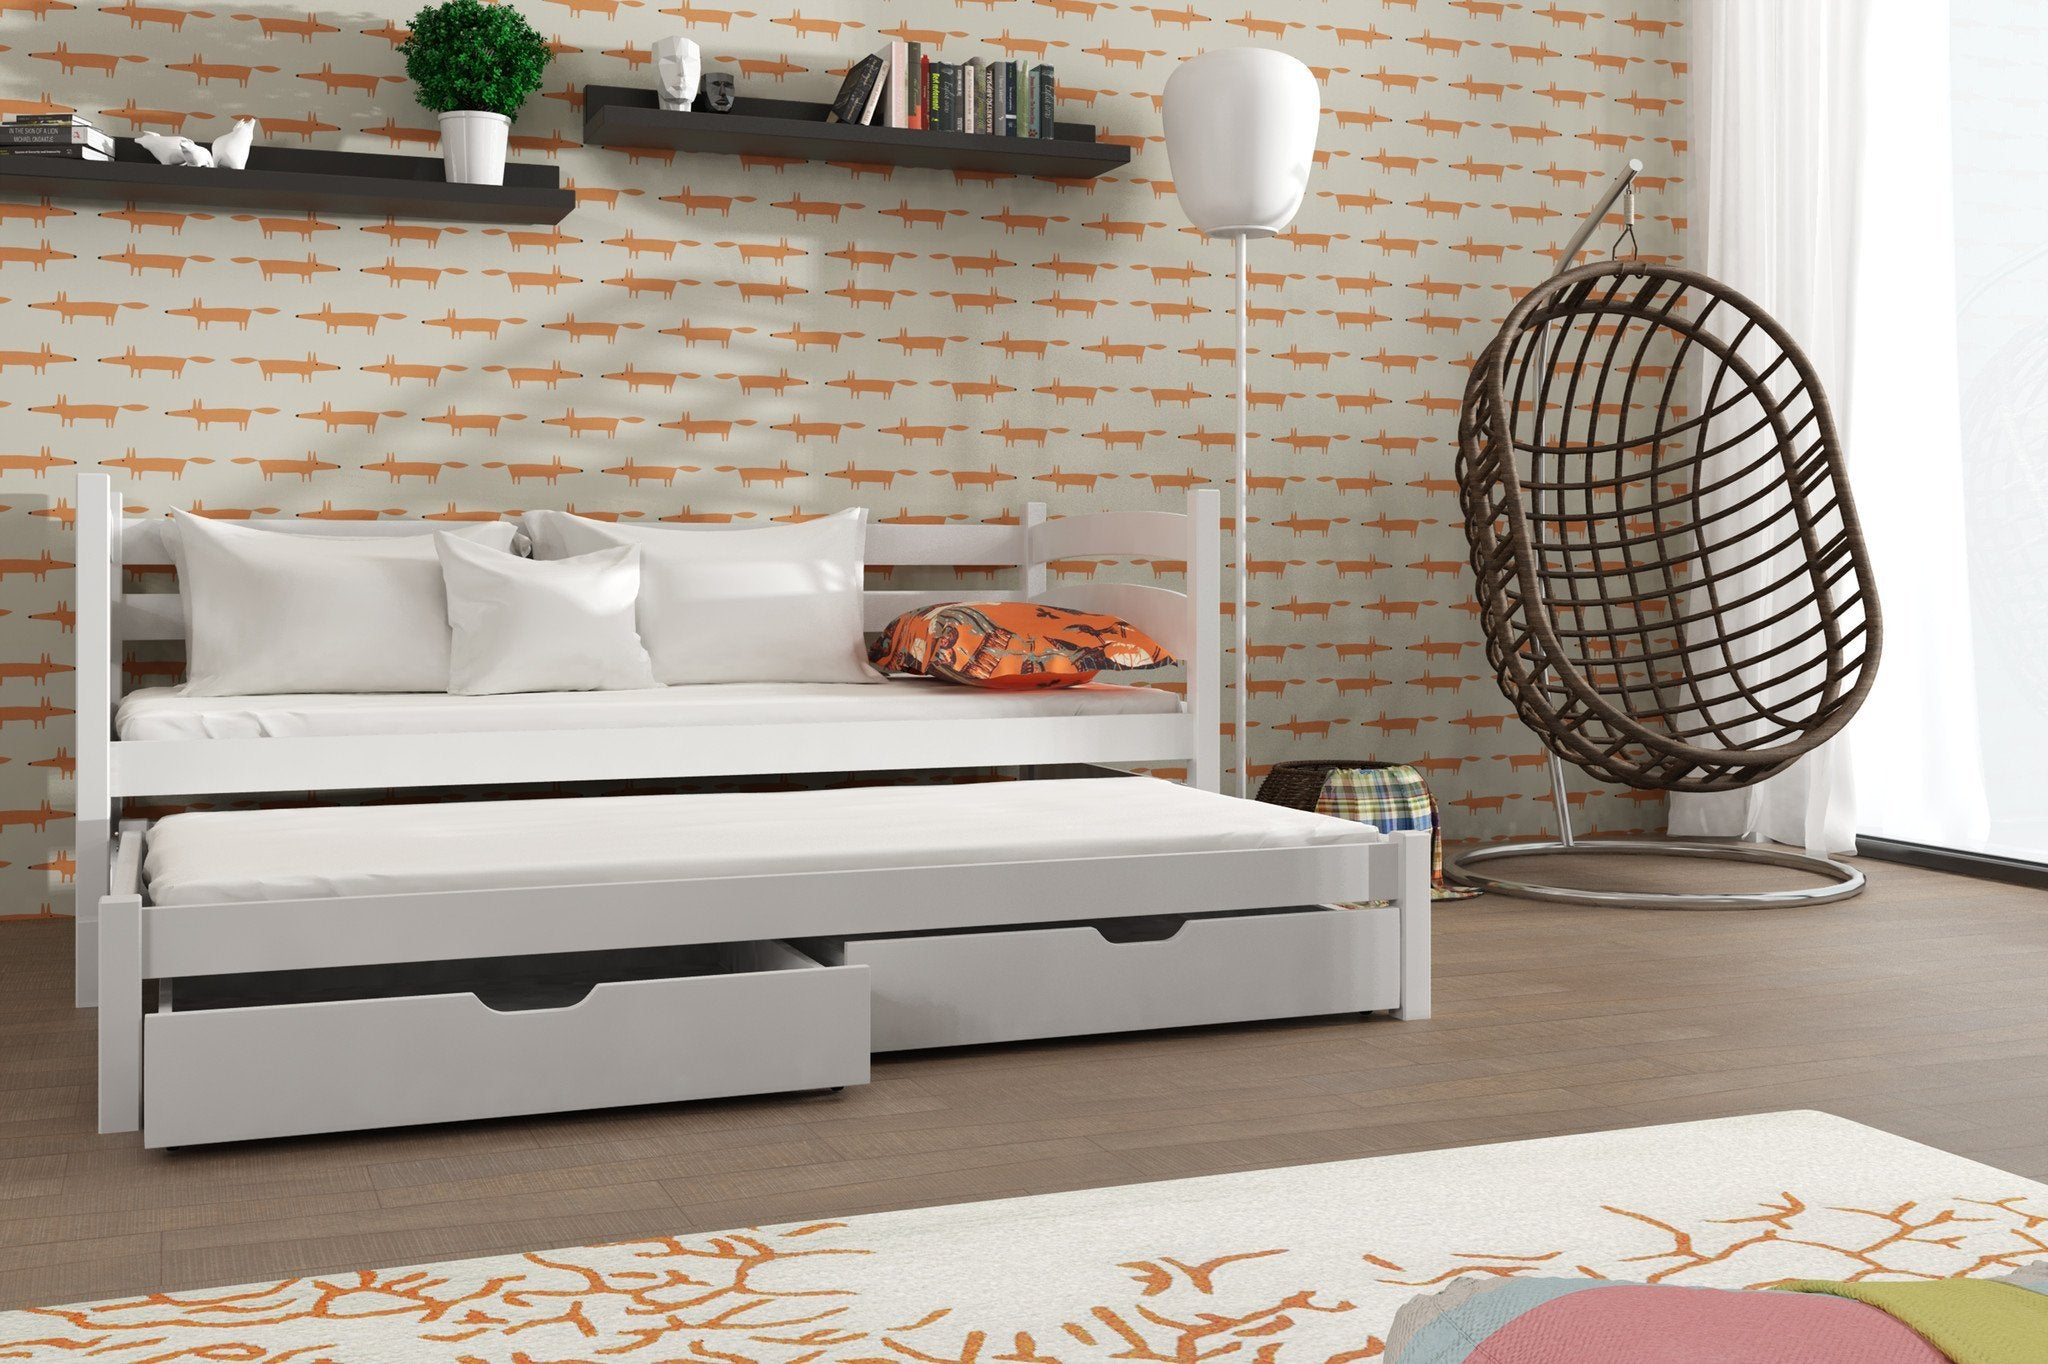 separation shoes 74681 39e27 Wooden Double Bed Toska with Trundle and Storage